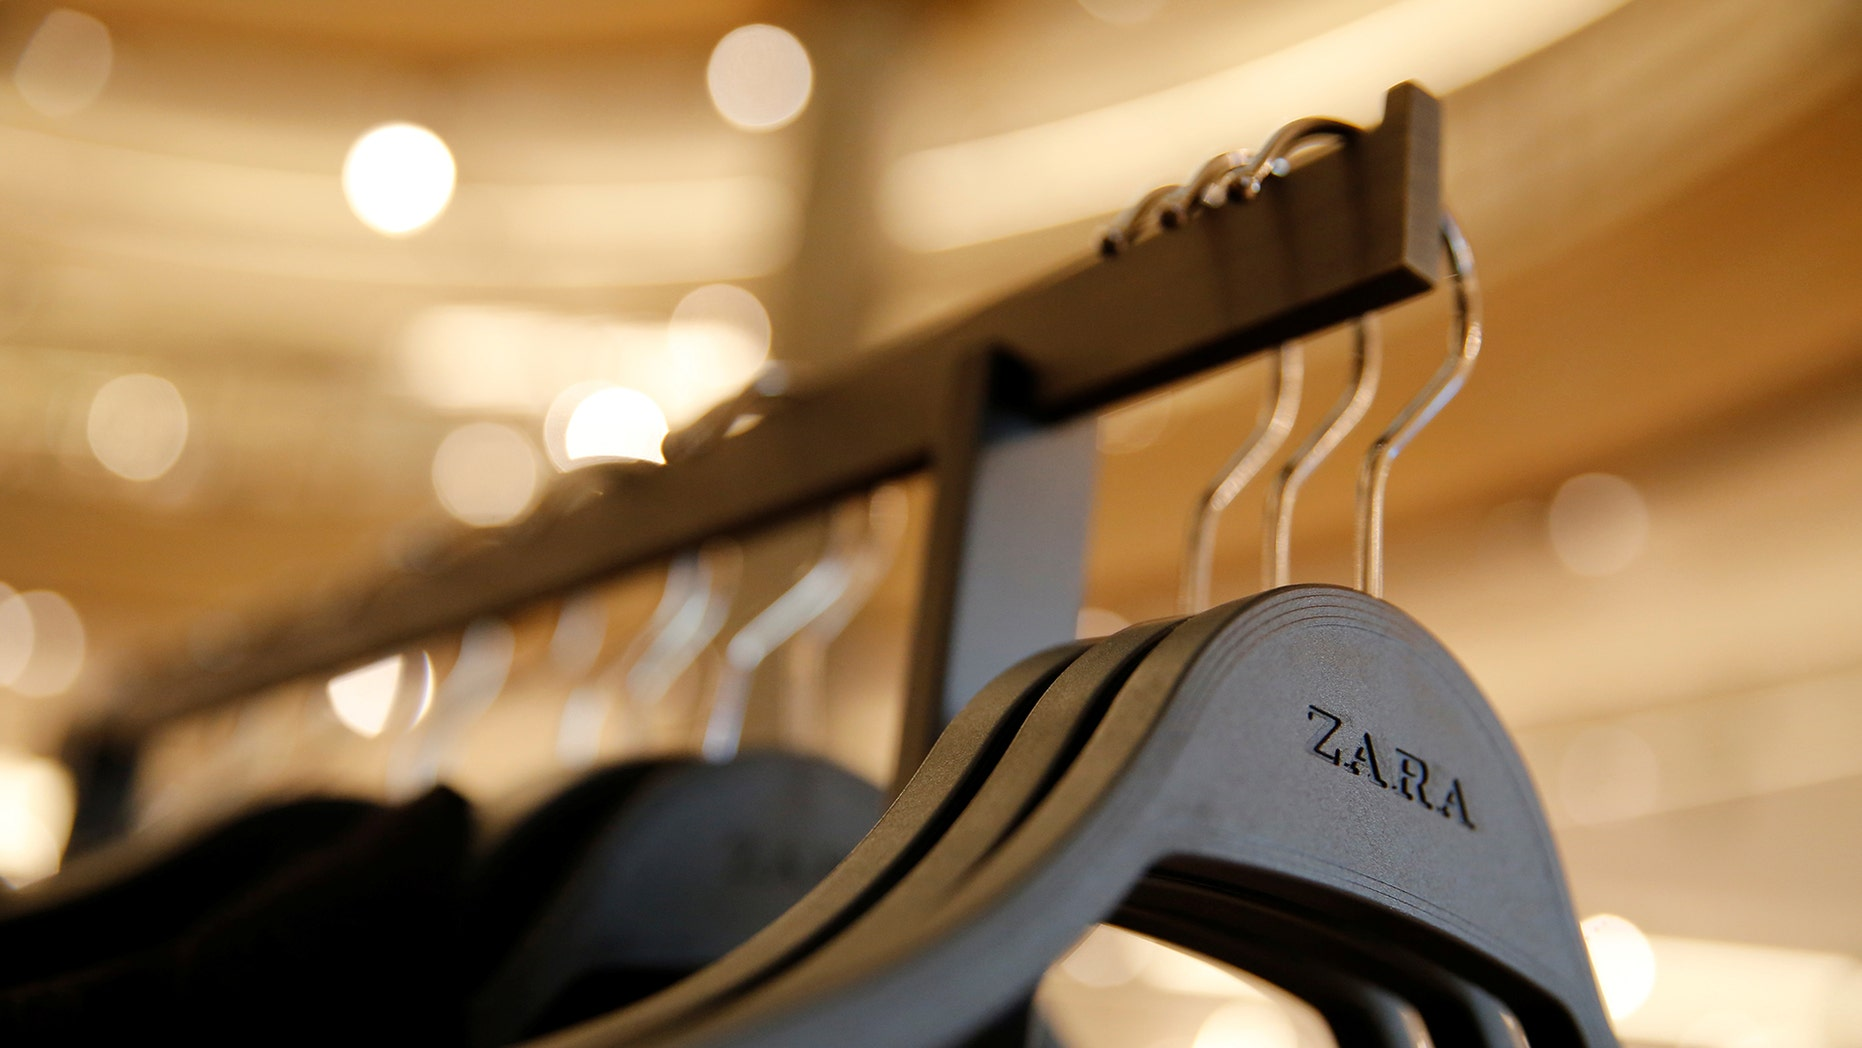 Clothes hangers are seen in a Zara store, an Inditex brand, in central Barcelona, Spain, December 13, 2016.